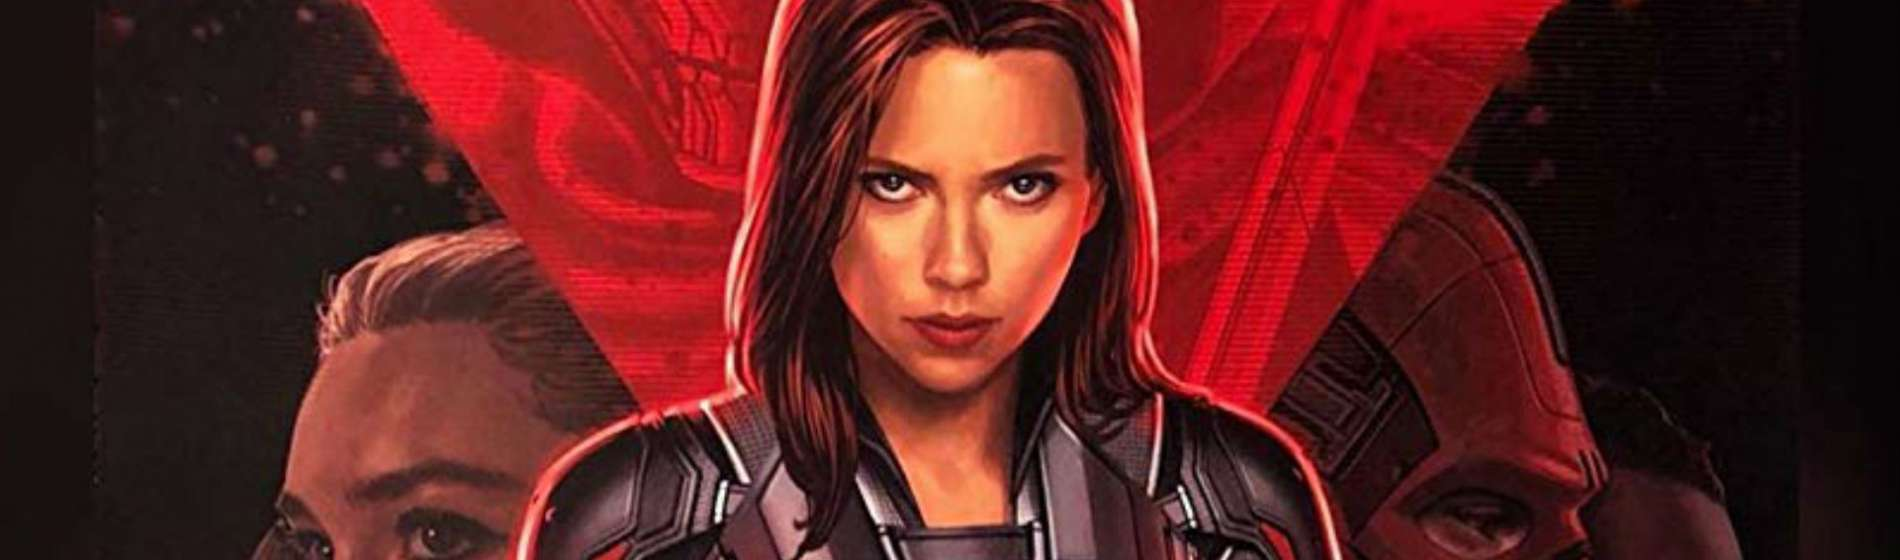 black-widow-poster-feature-image